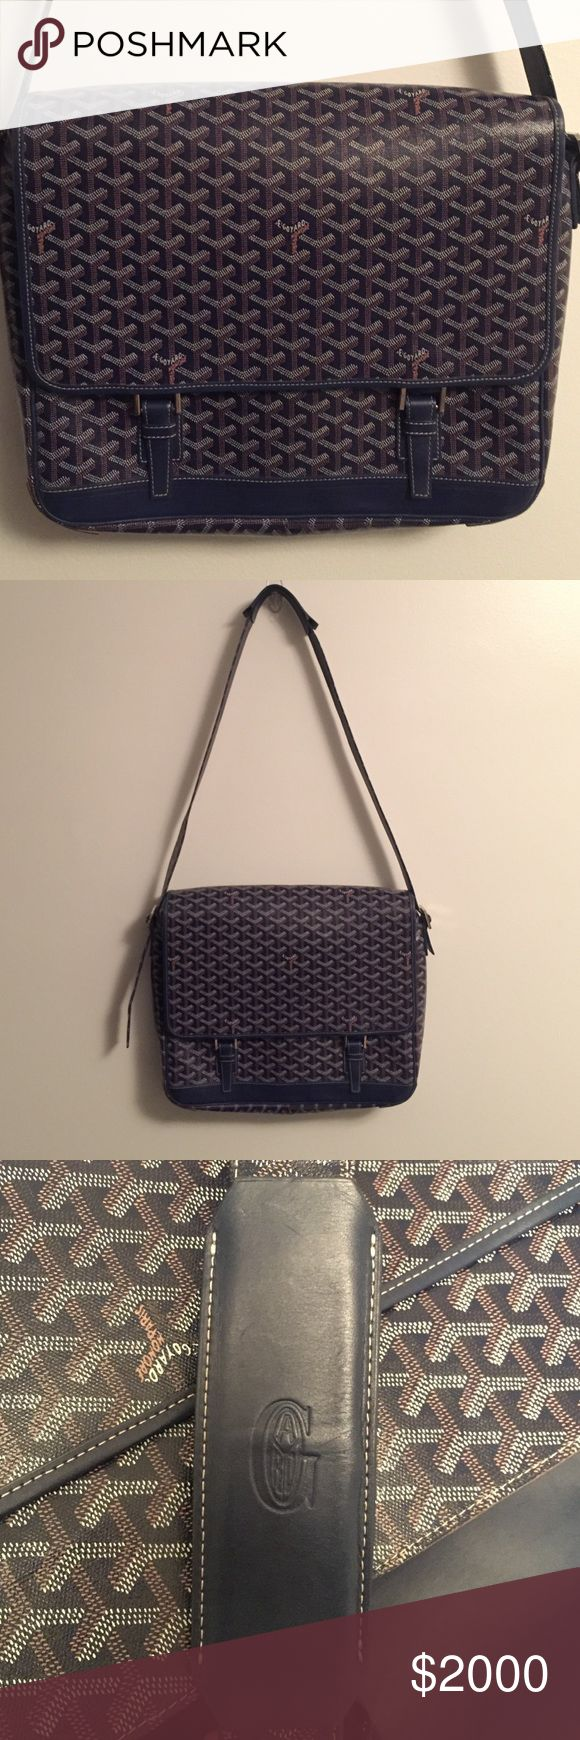 """GOYARD Messenger Bag blue 2 buckle Leather Excellent condition! GOYARD cross body messenger bag. 2 buckle closure in front. Serial number to ensure authenticity. Guaranteed. Measures approx 15"""" wide x 12"""" tall x 3"""" deep. Strap is approx 55"""" long x 1.5"""" wide. Please message for more info. Goyard Bags Crossbody Bags"""